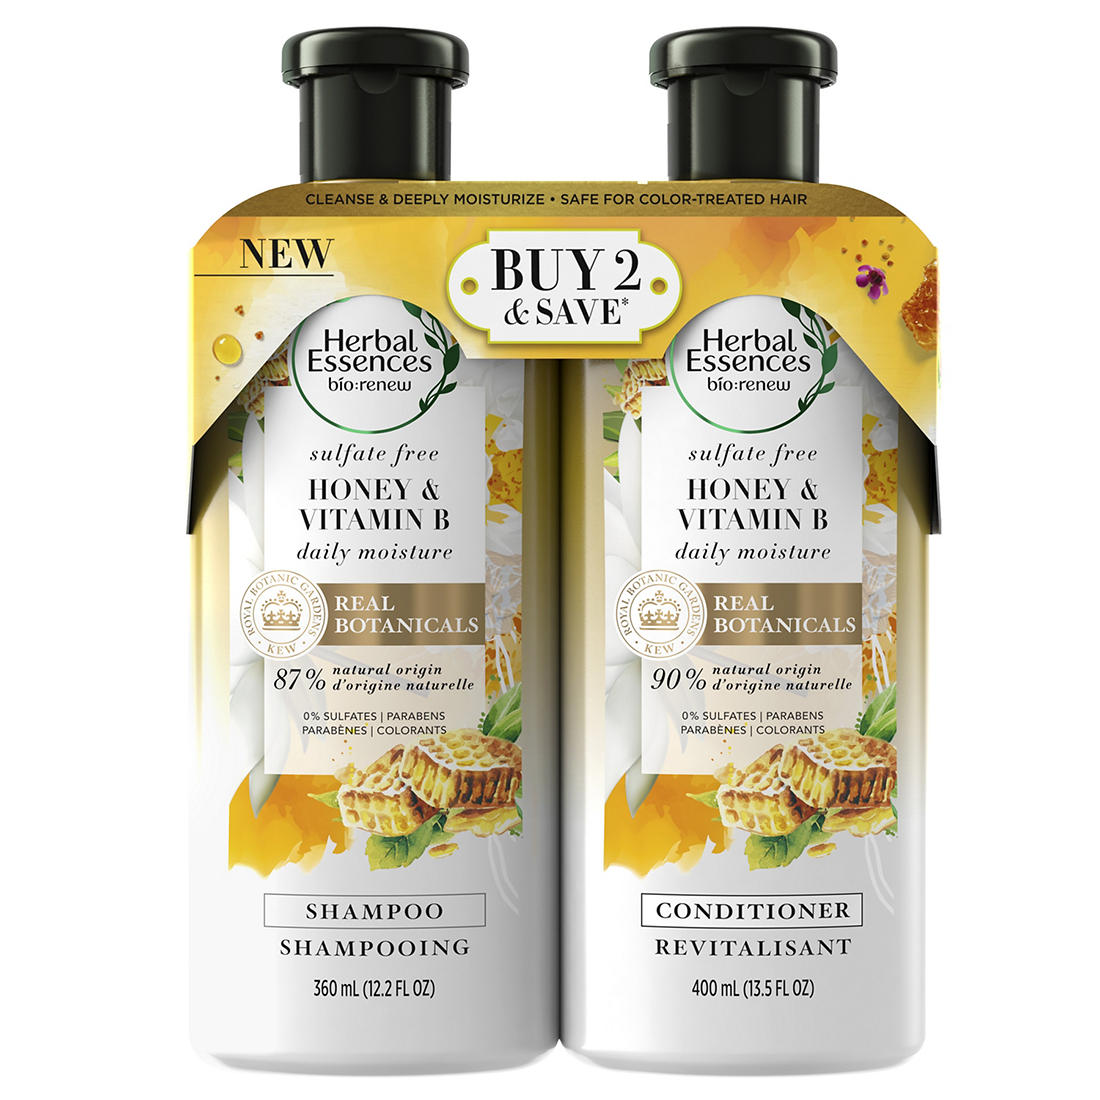 10 drugstore shampoo and conditioners